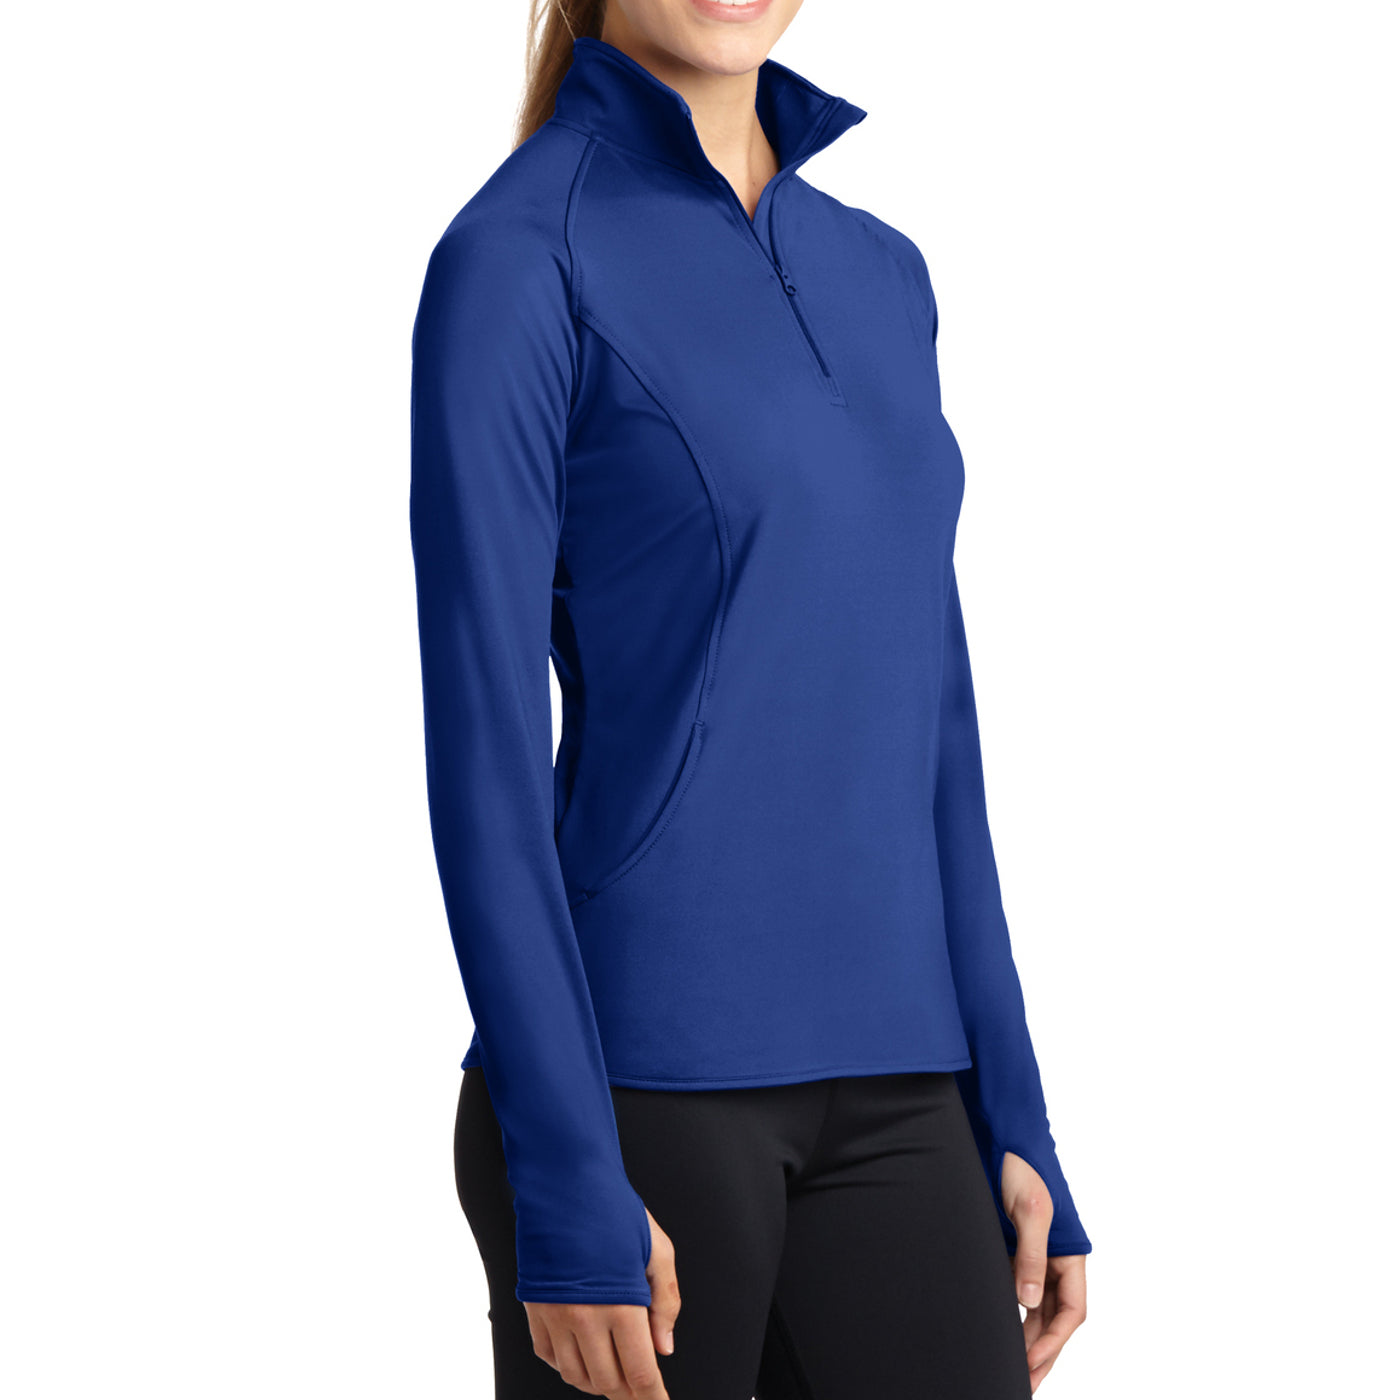 Women's Sport Wick Stretch 1/2 Zip Pullover - True Royal - Side